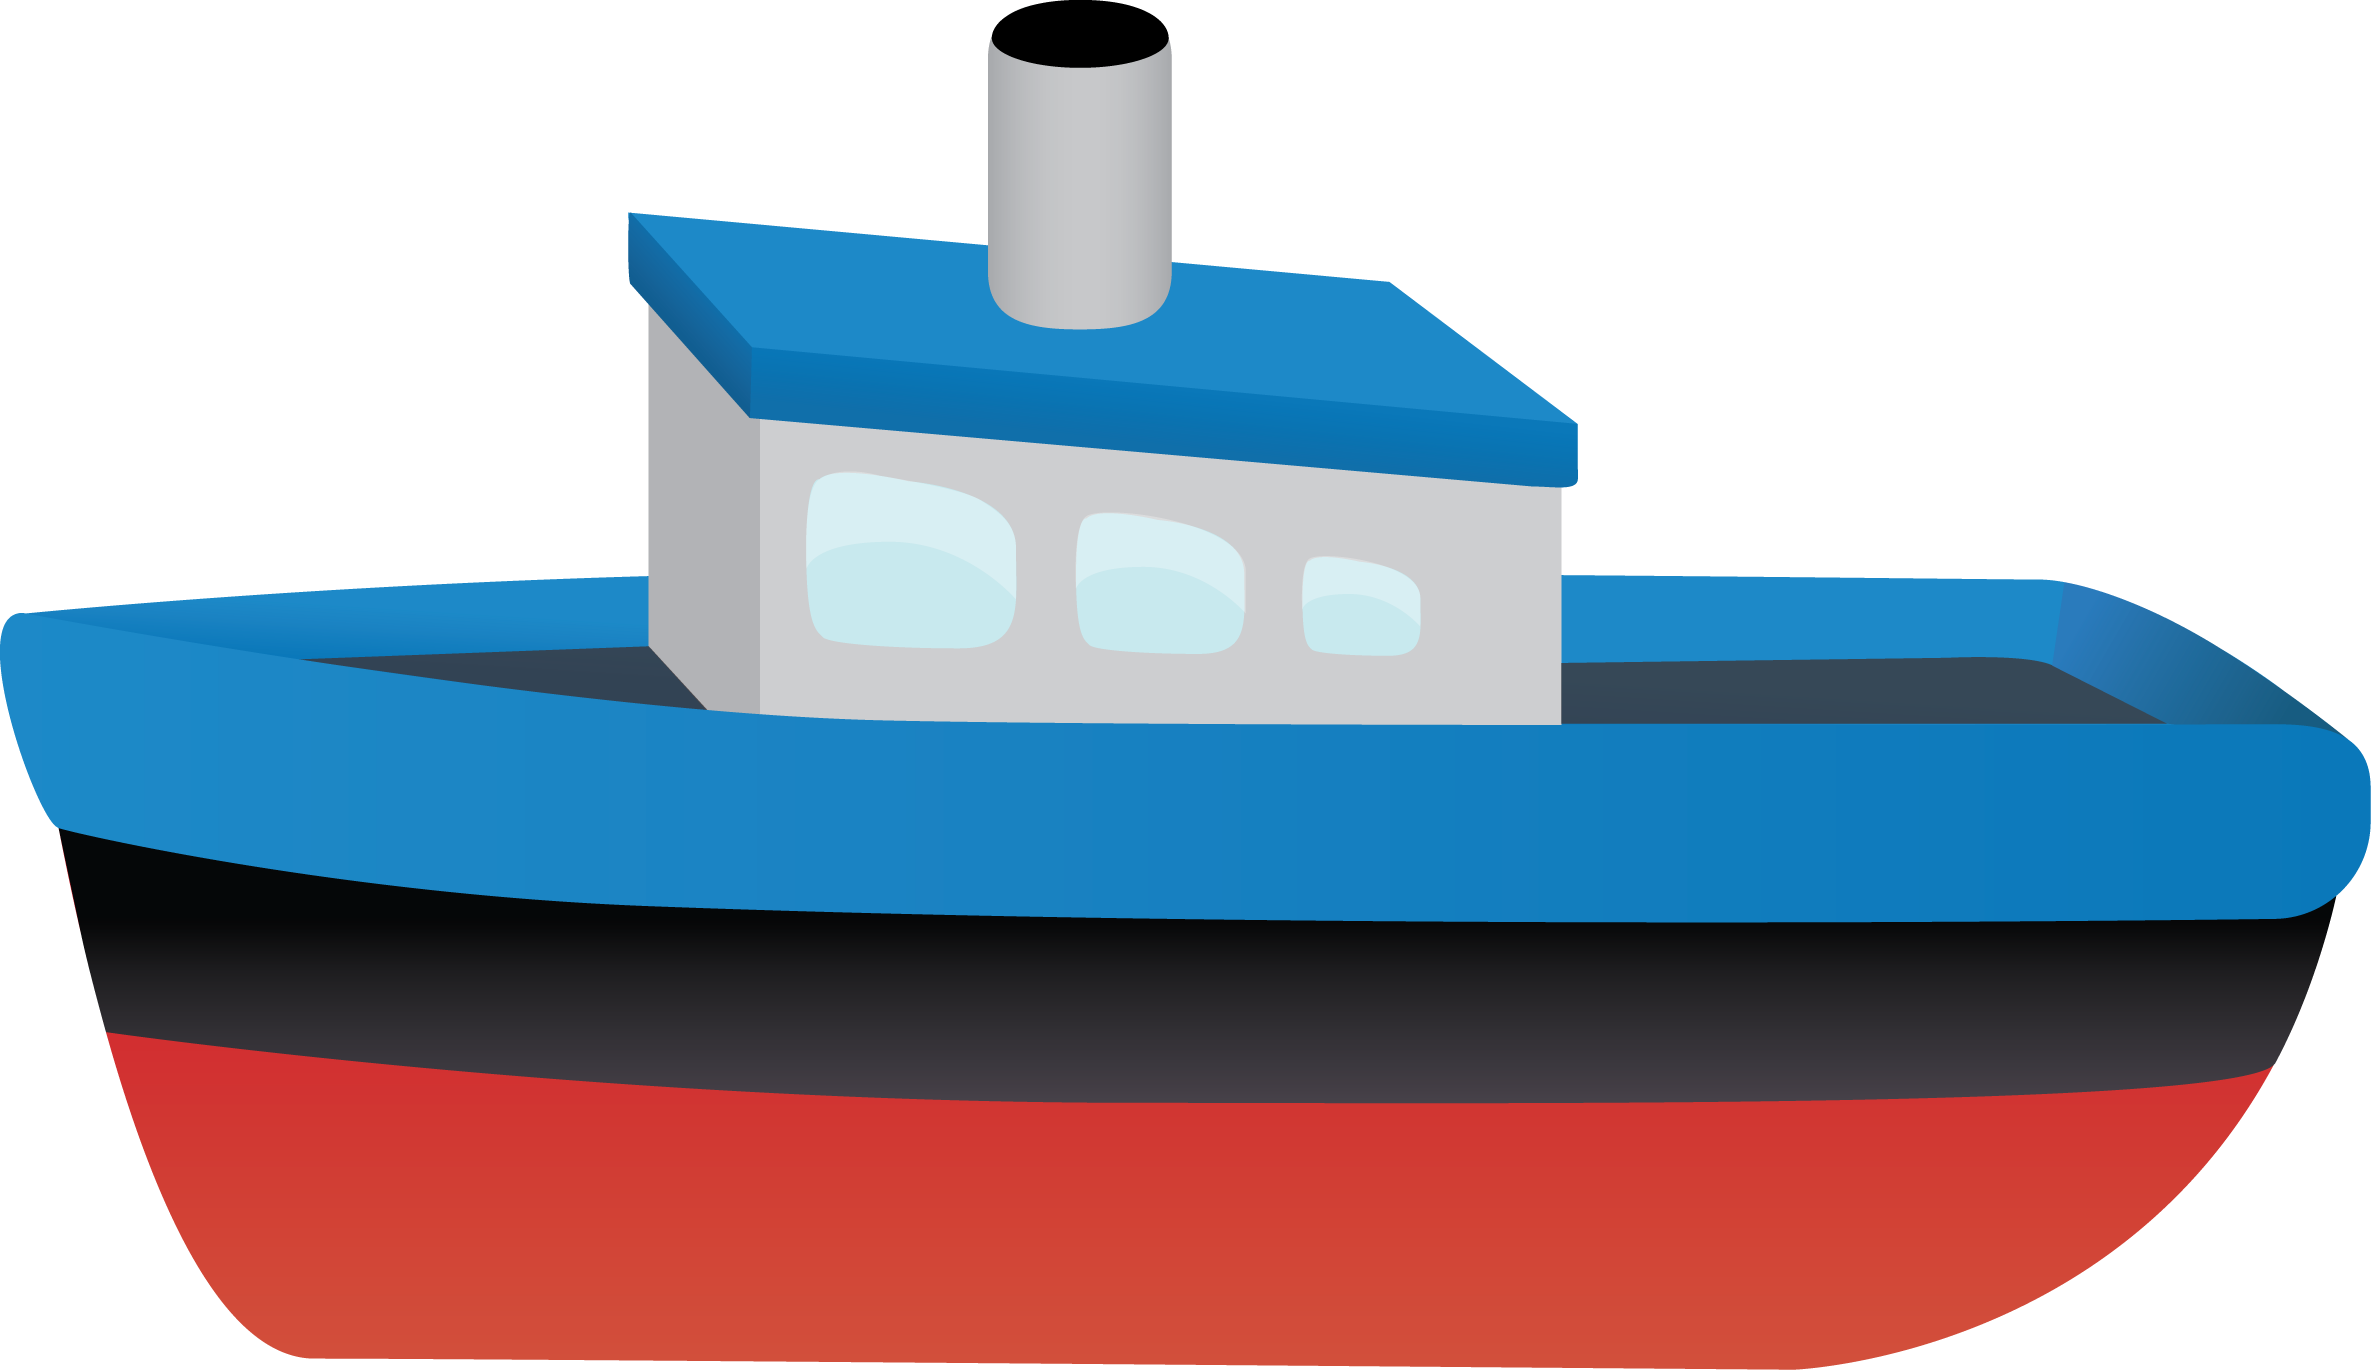 Ship clip art png. Collection of clipart